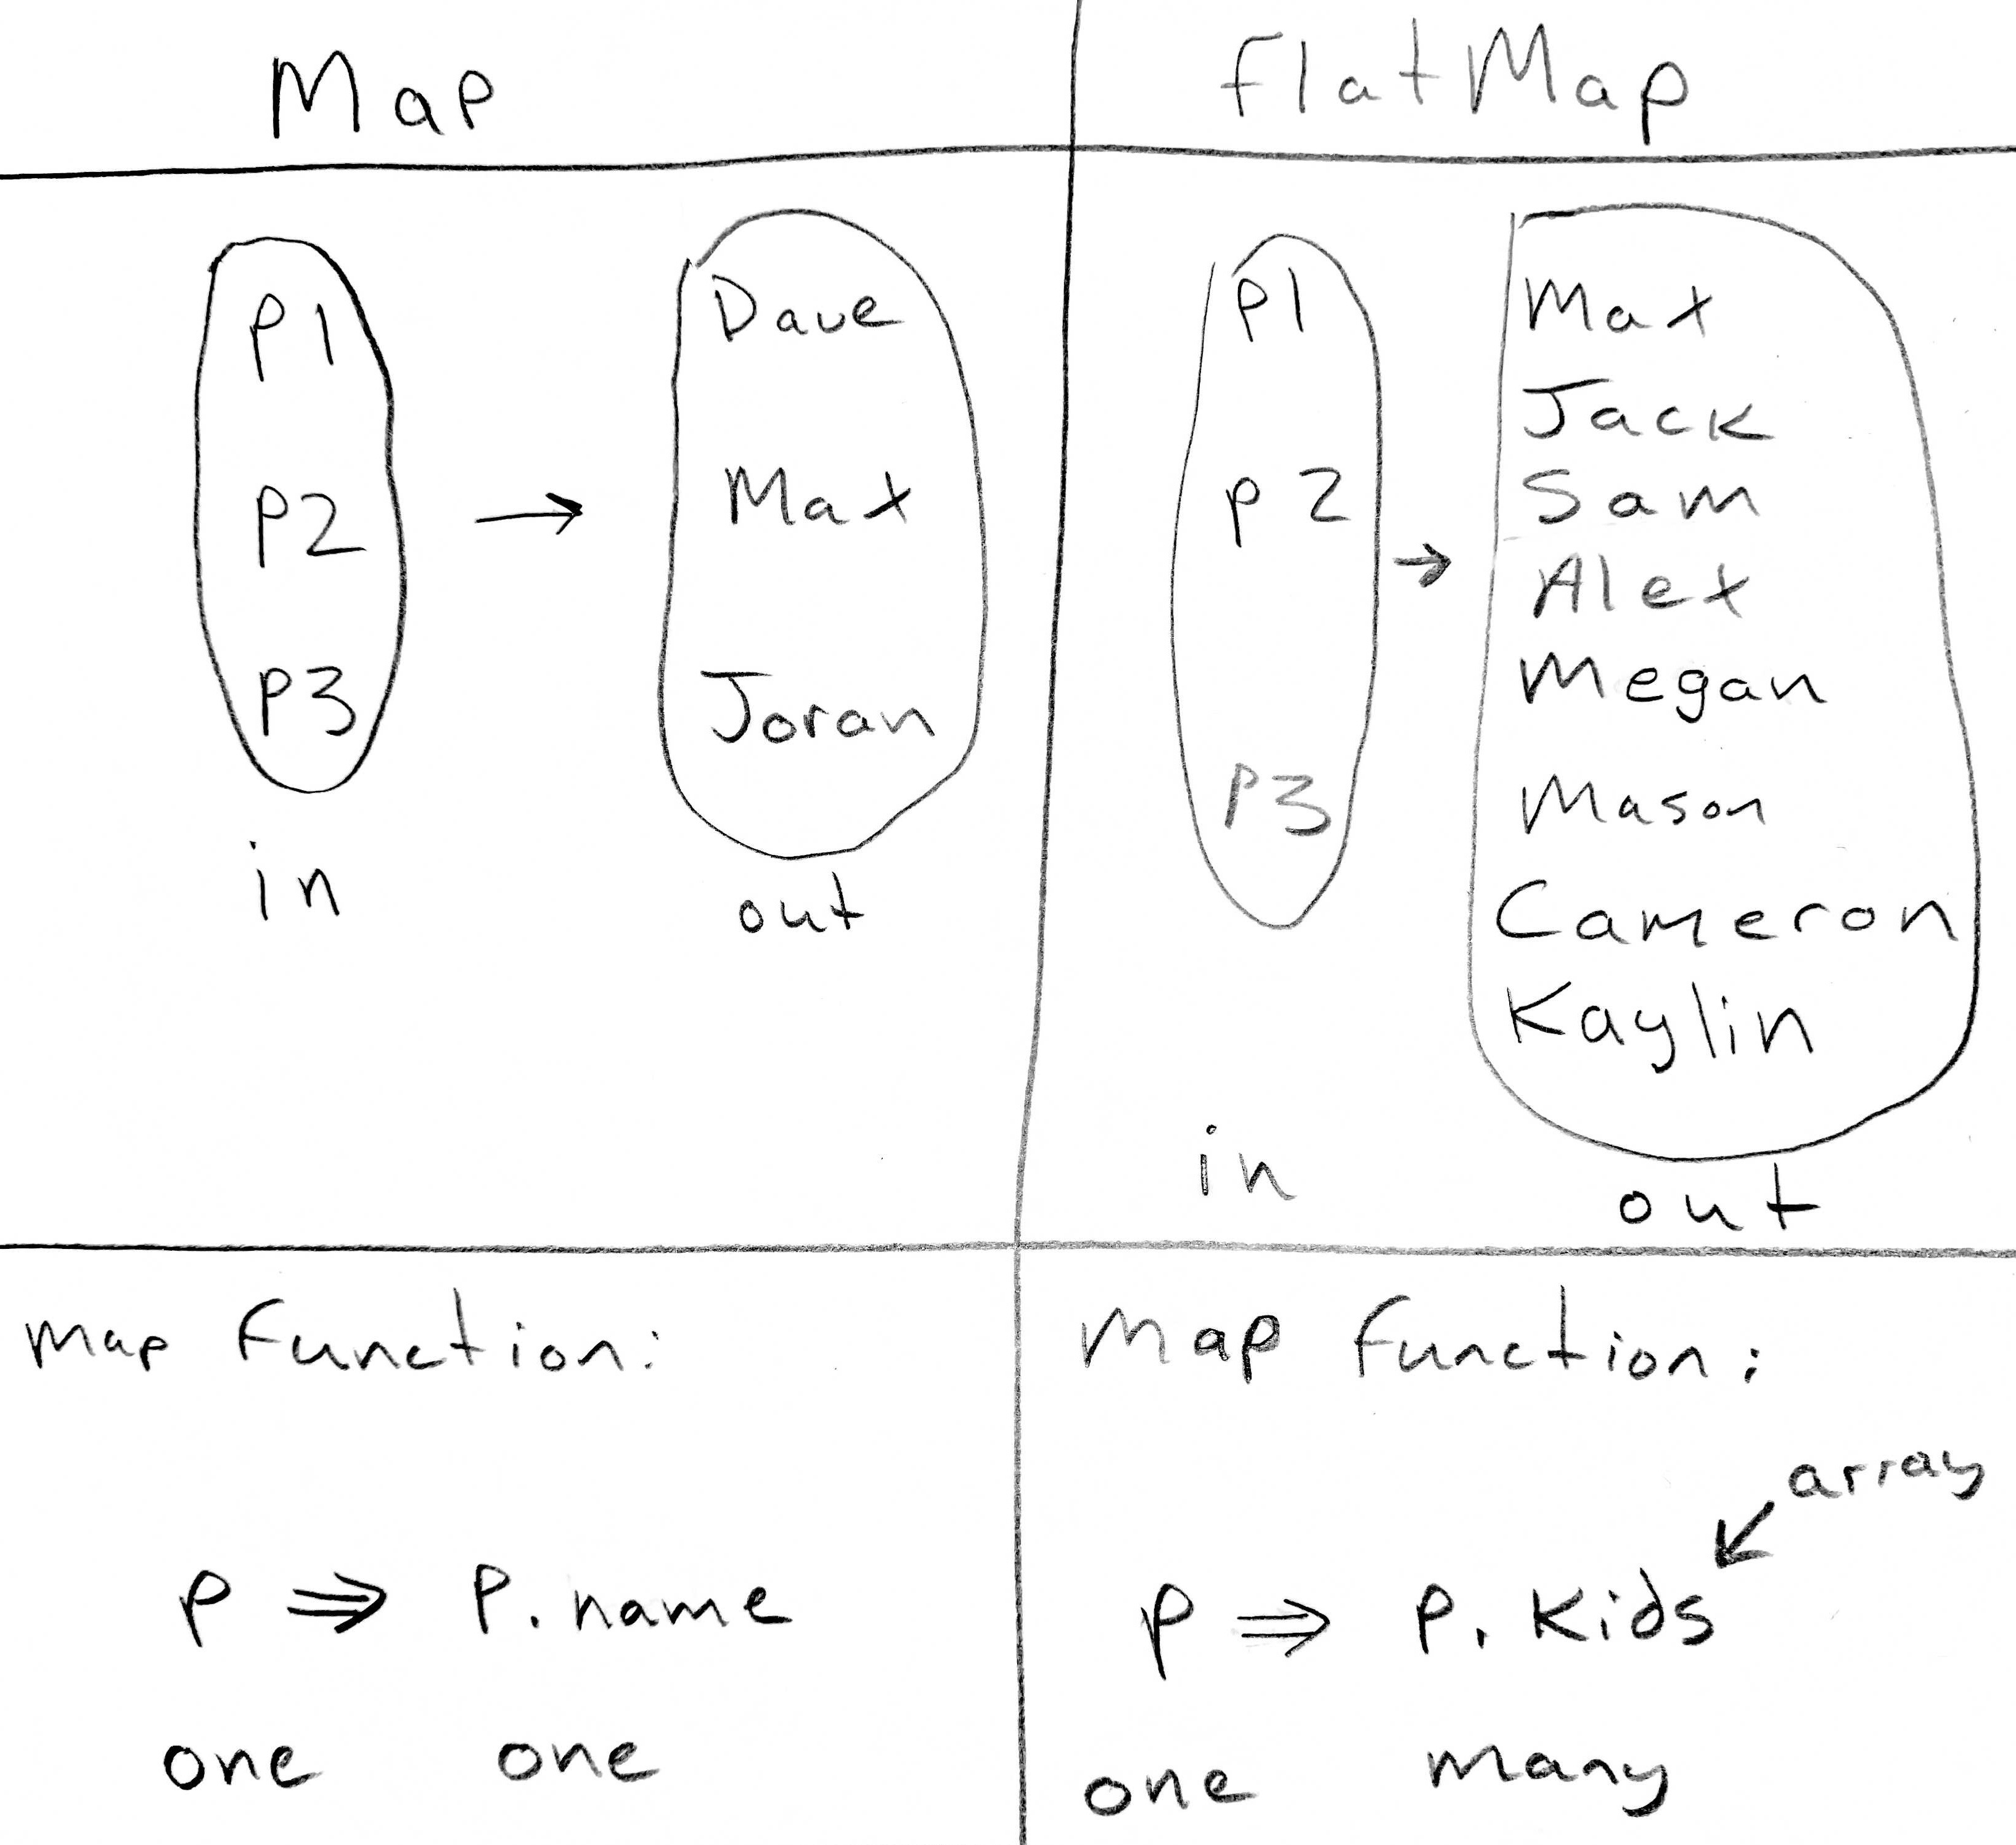 Json array to map